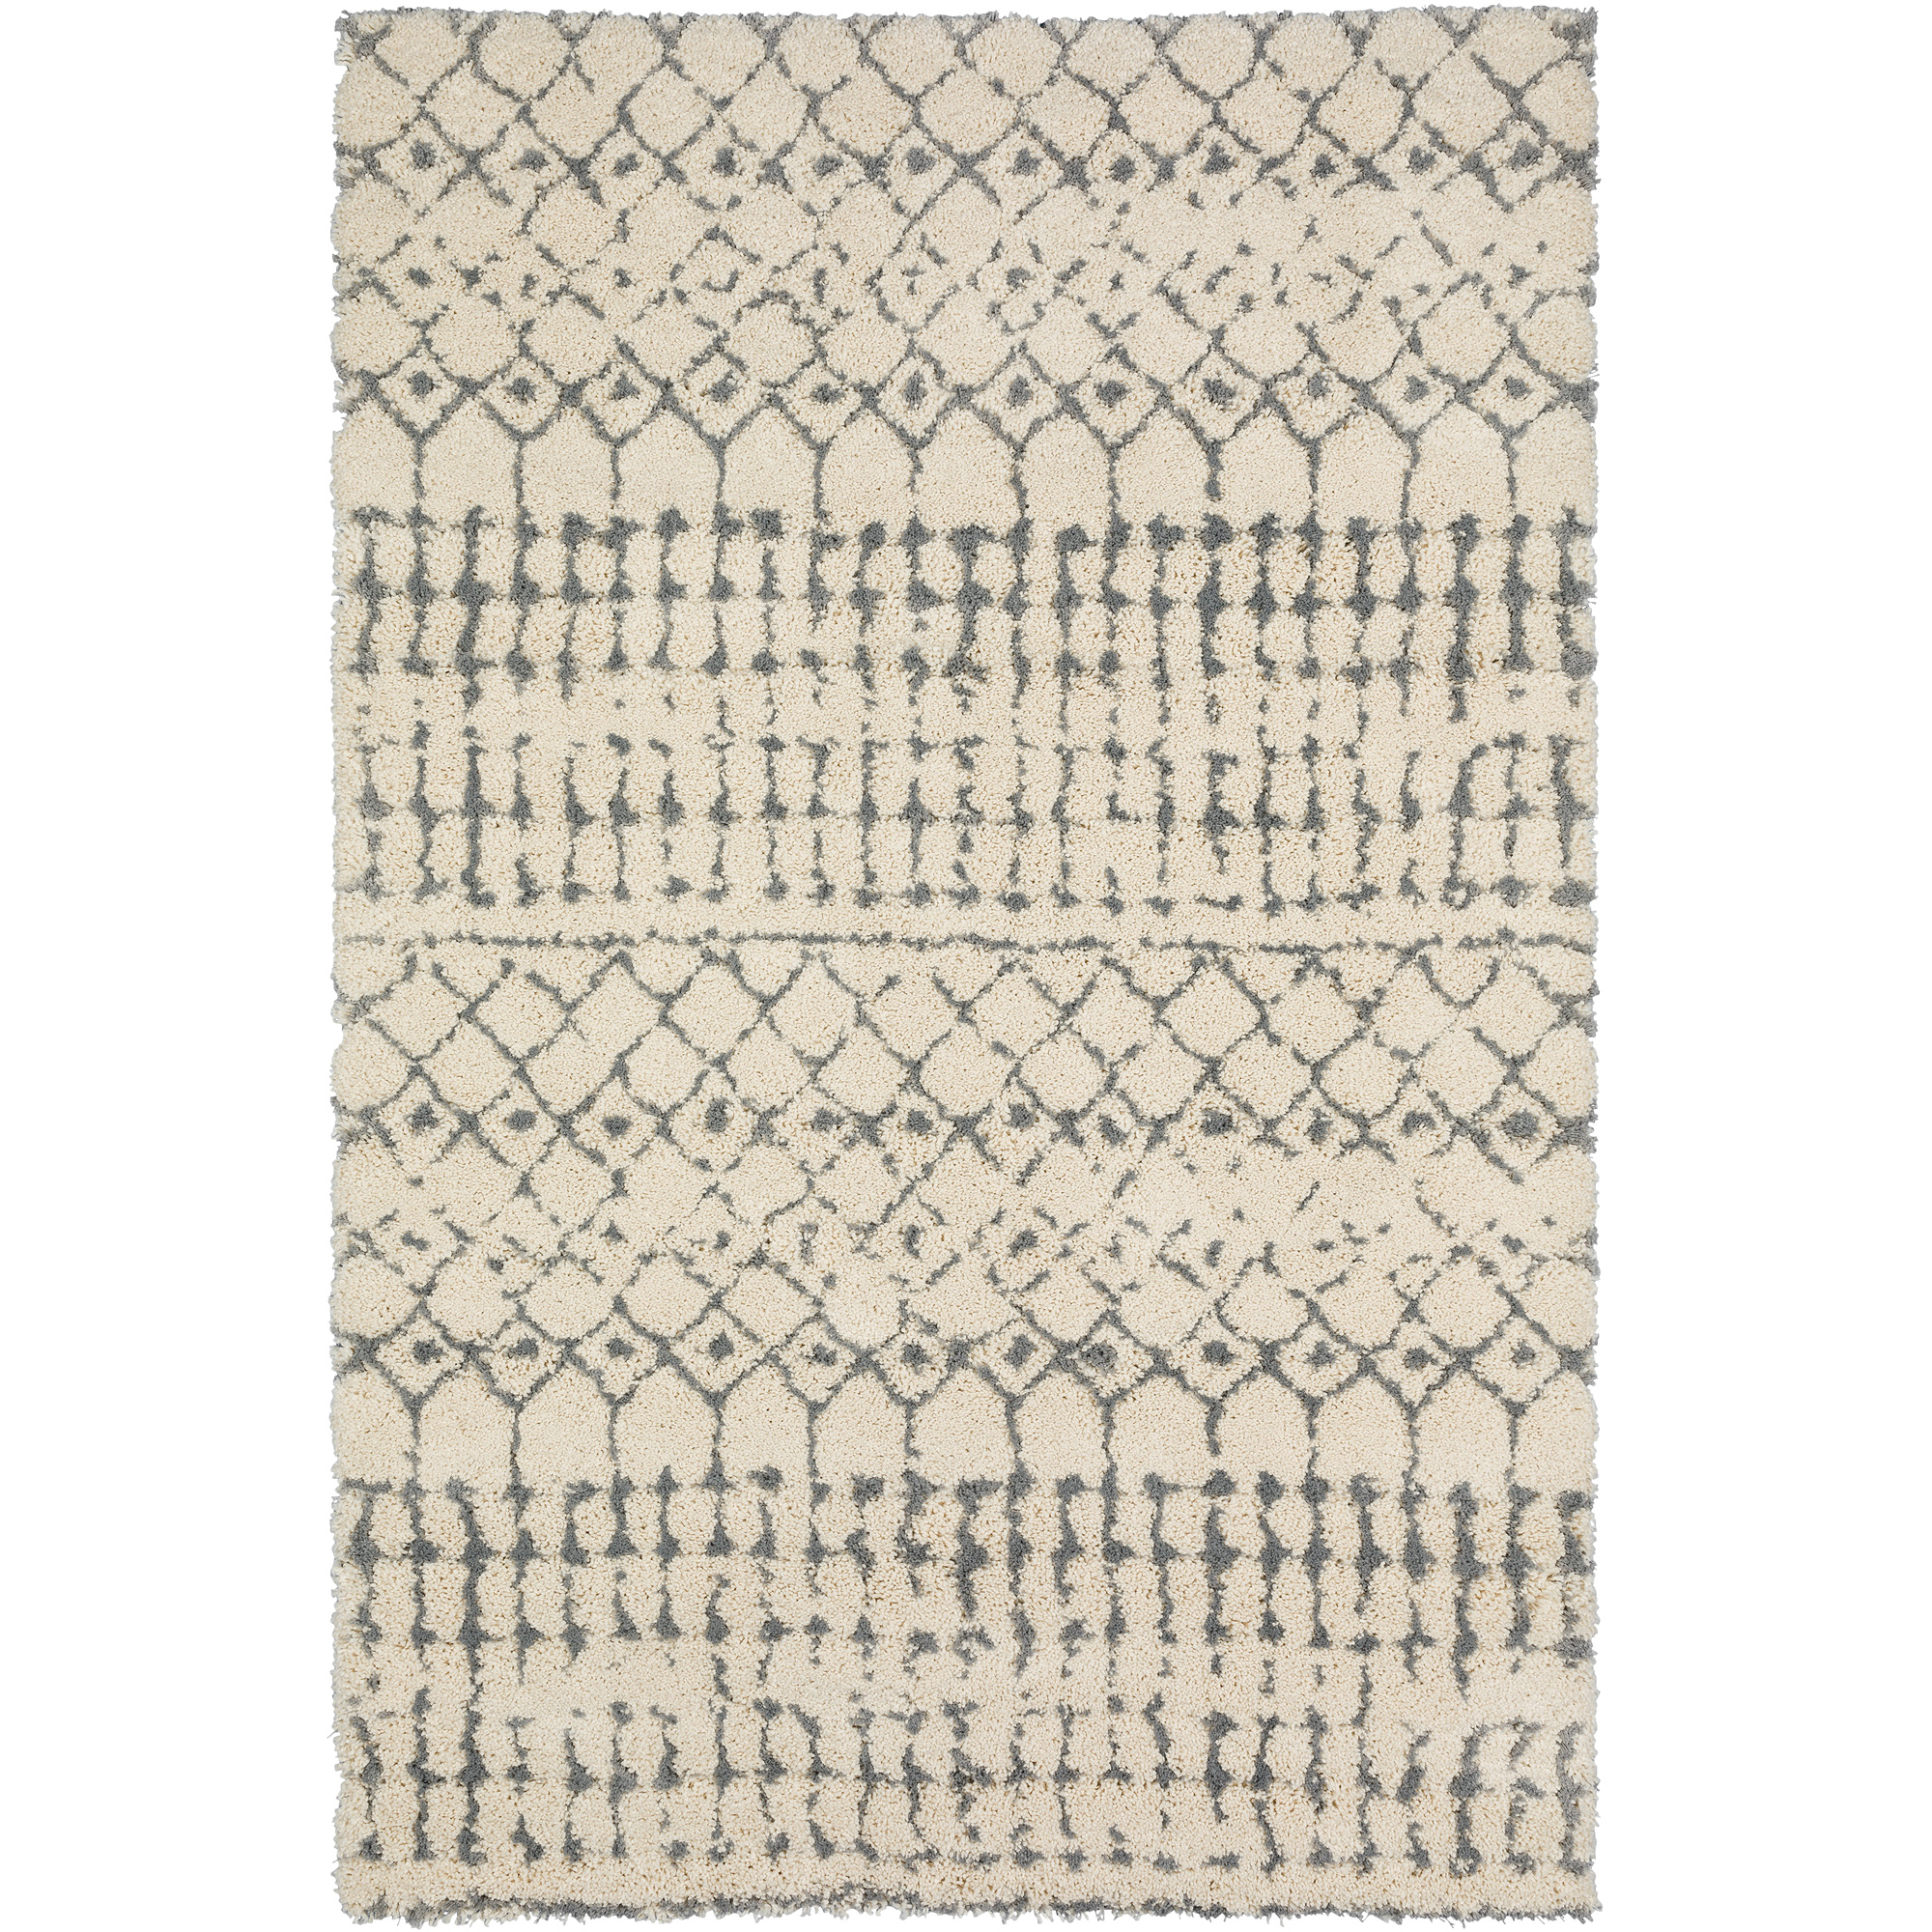 Dalyn Rug Company | Marquee Ivory And Metal 8x10 Area Rug